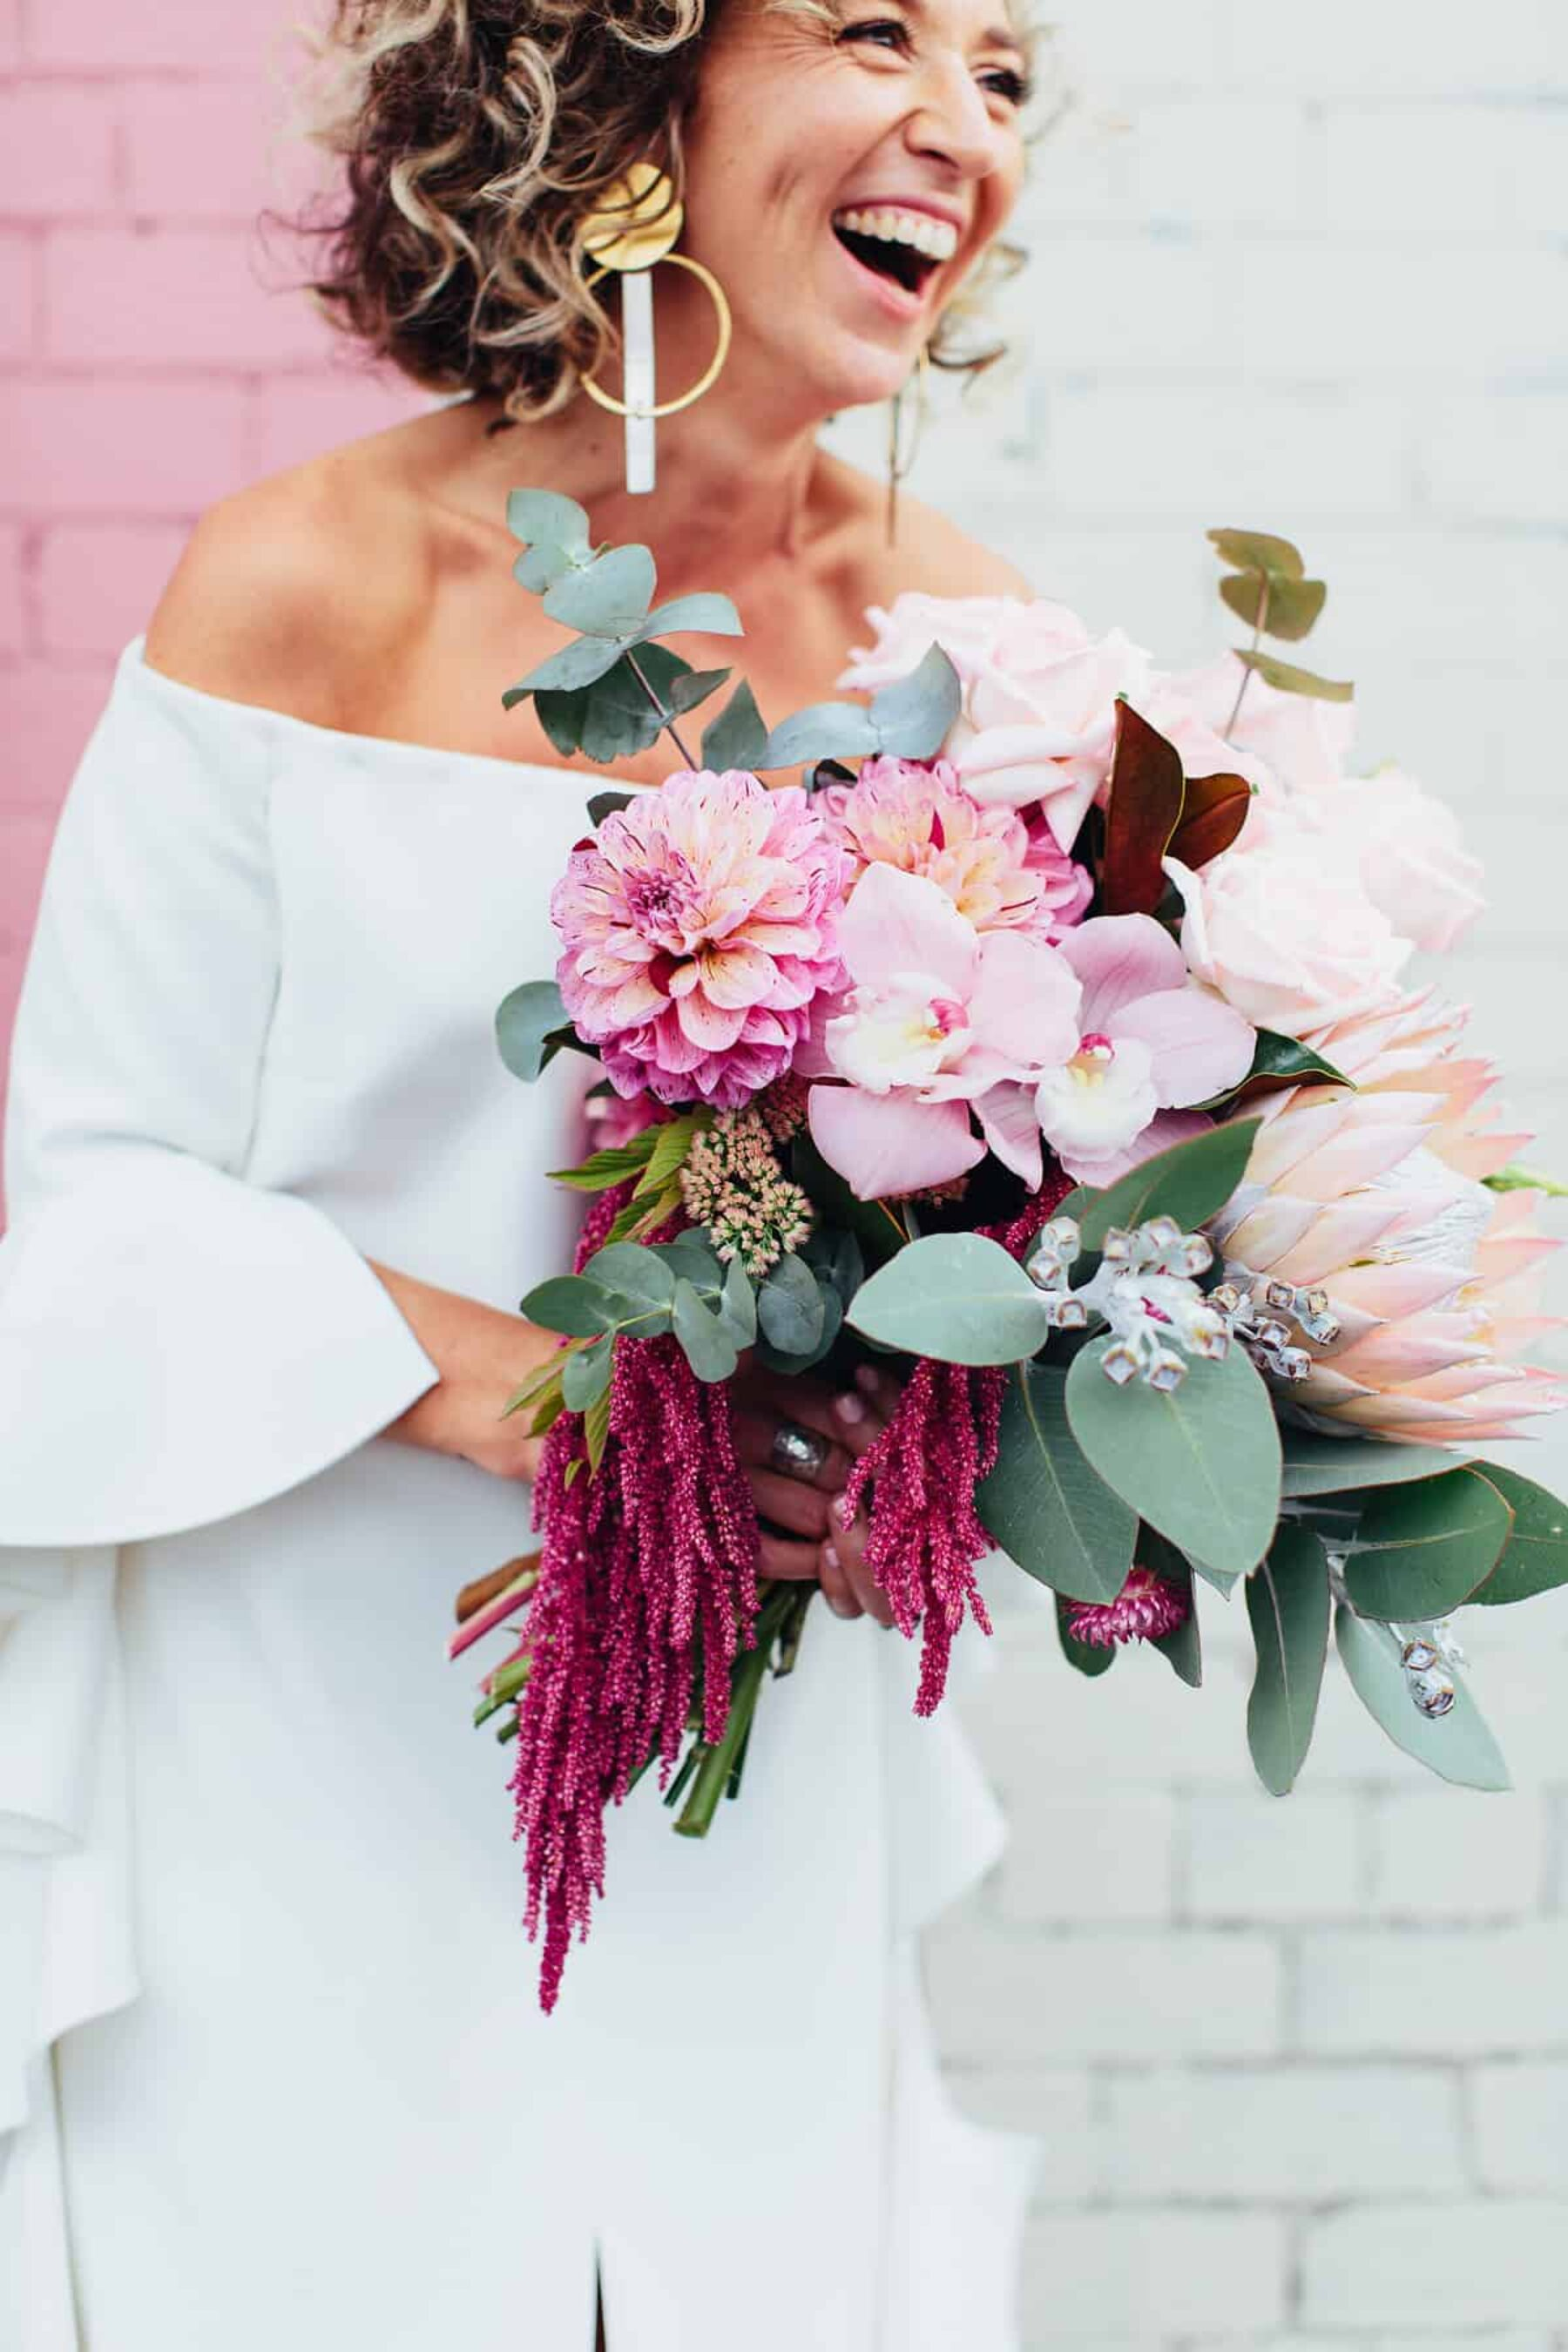 vibrant pink bouquet with with protea, amaranth and orchids